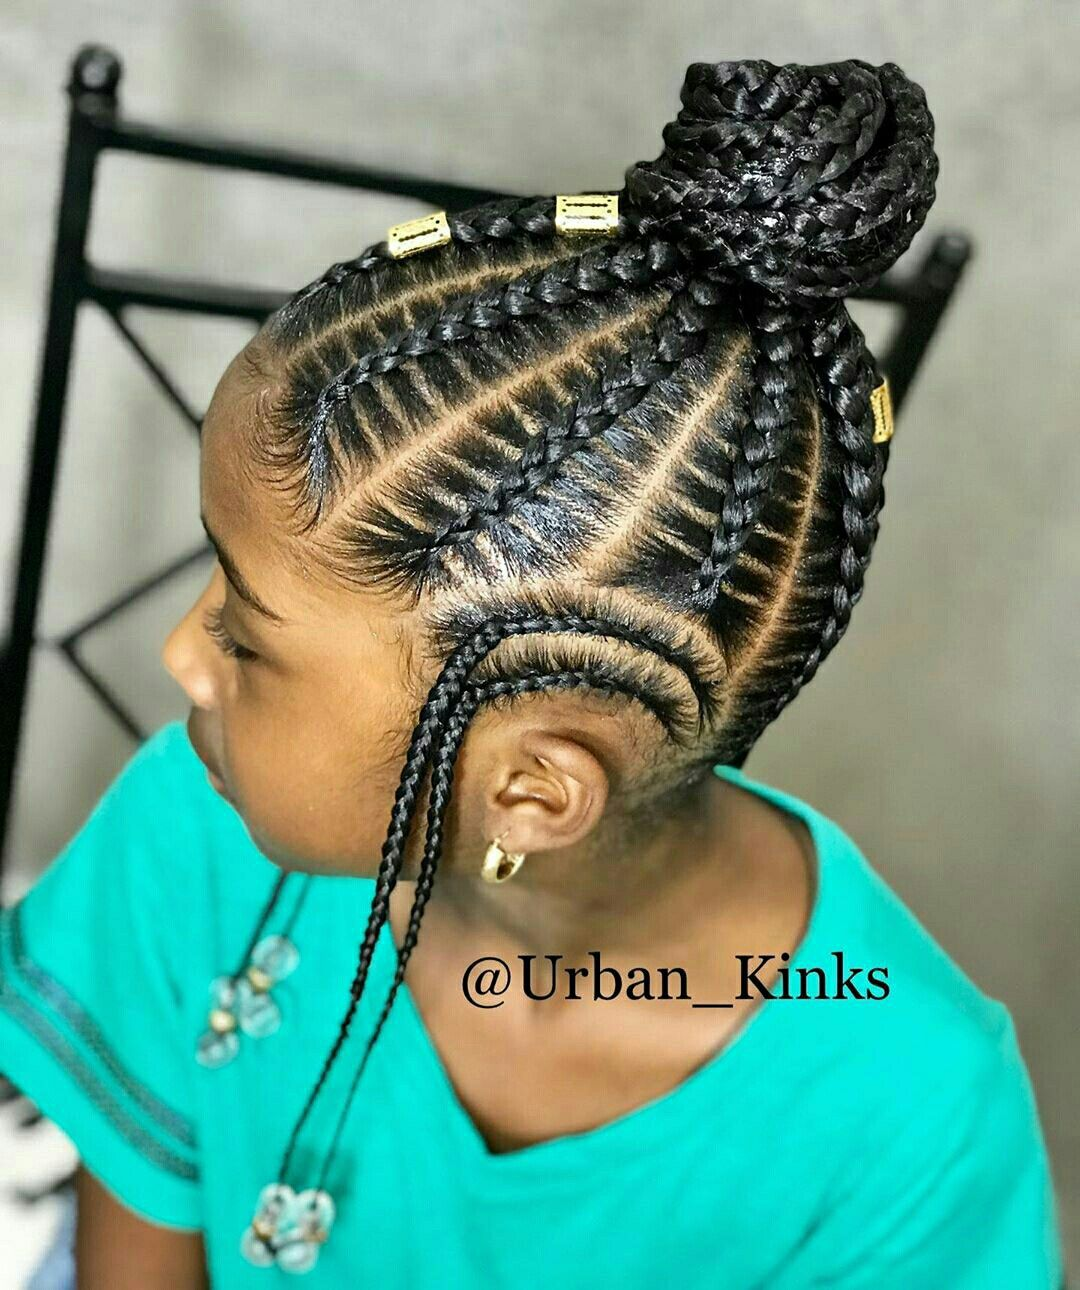 A Selection Of 50 Plus Kid Braid Styles And Little Girl Hairstyles Kidbraidstyles Littlegirlhair Little Girl Hairstyles Hair Styles Girls Natural Hairstyles